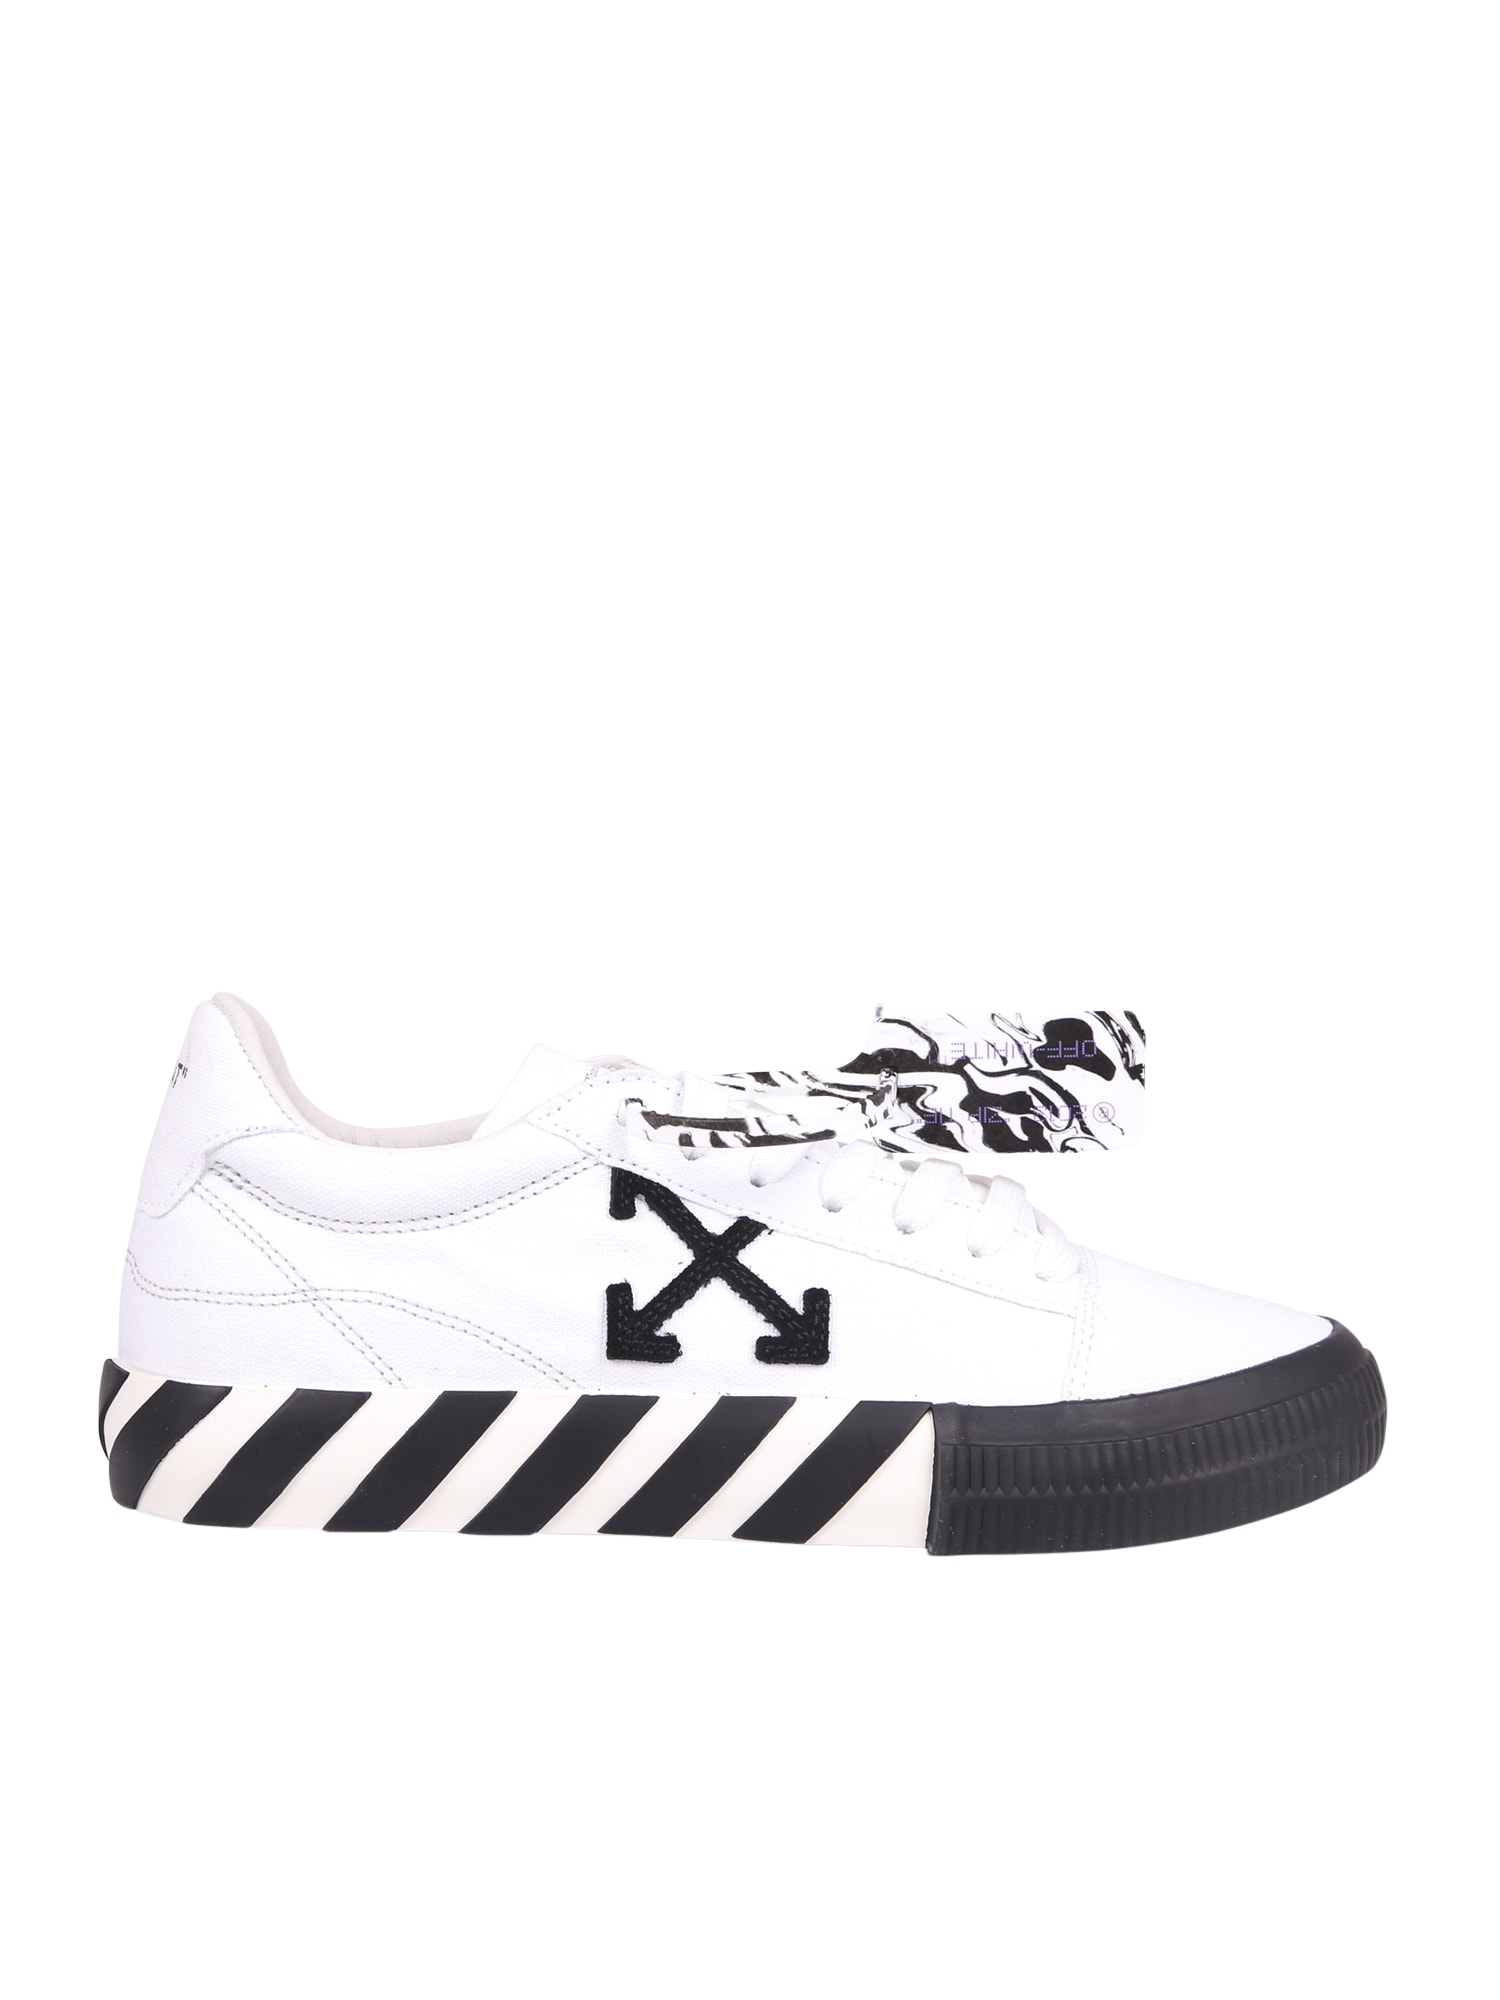 Off-White Low tops VULCANIZED SNEAKERS